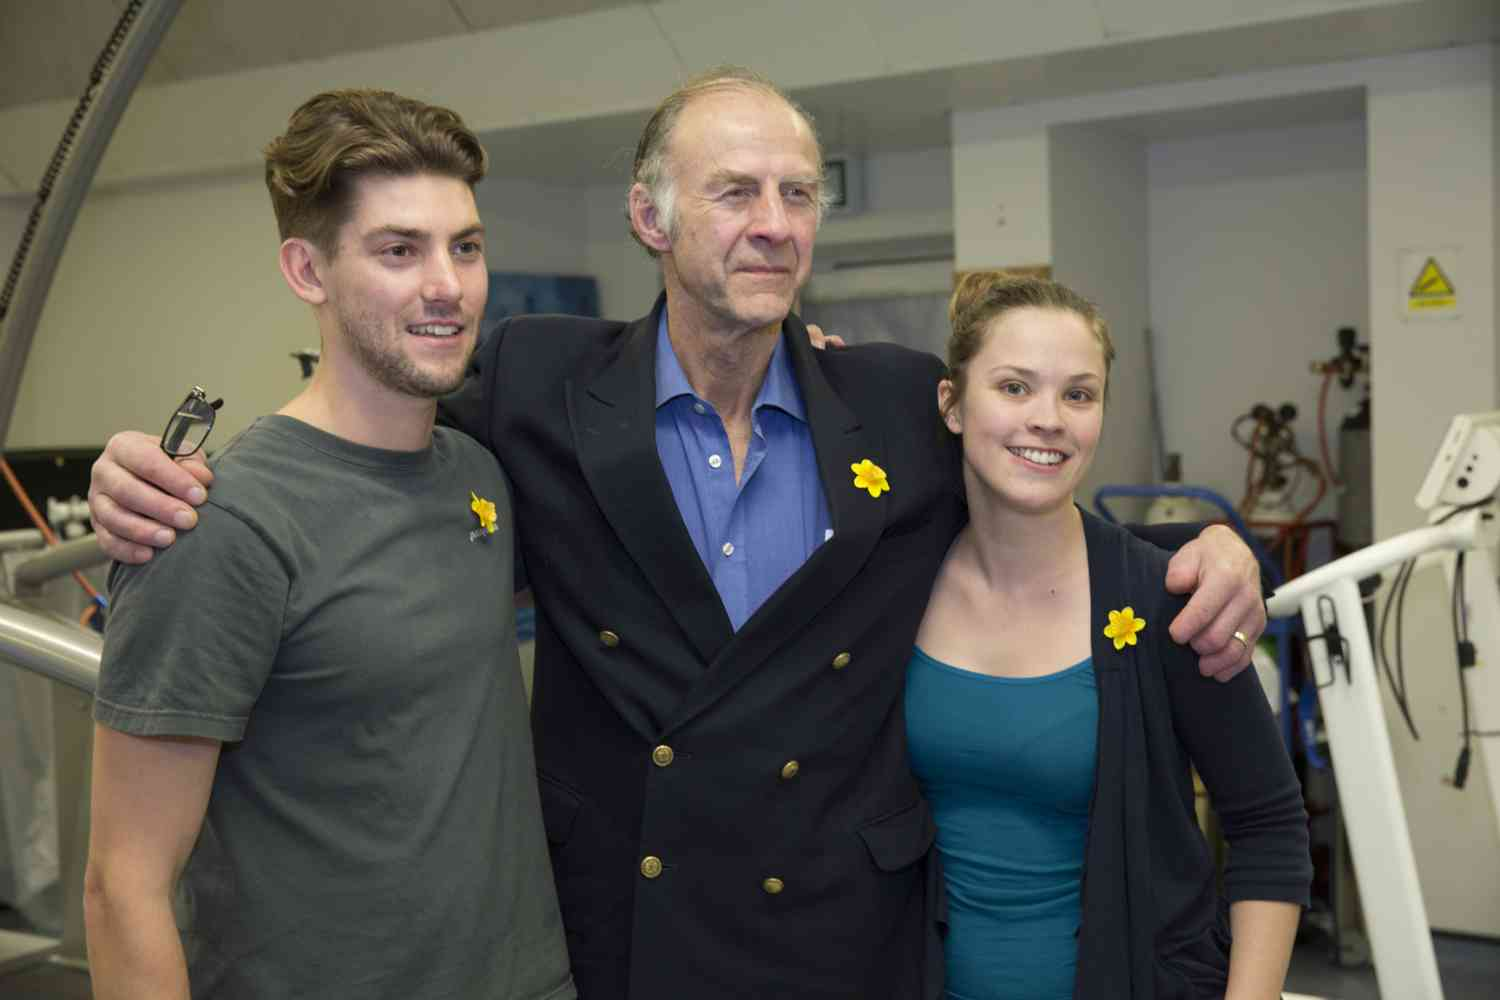 Working with British Explorer Sir Ranulph Fiennes - Heat acclimation expertise for Sir Ranulph Fiennes and other athletes preparing for Marathon des Sables